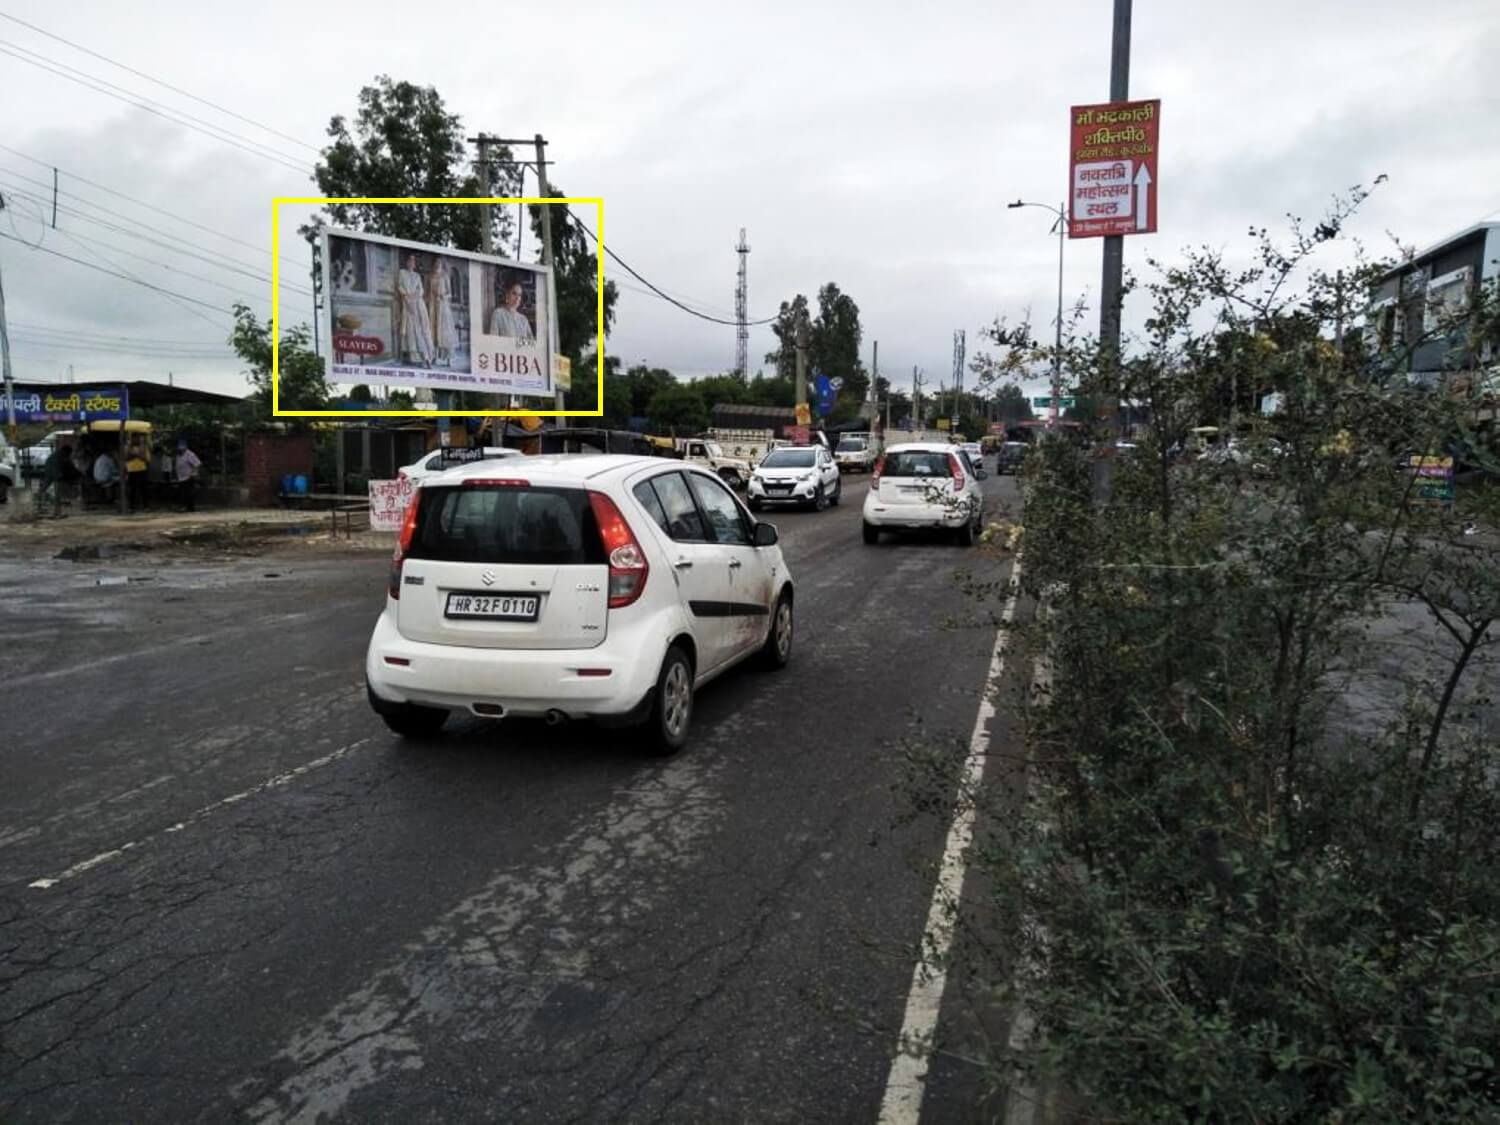 Option No.4 Unipole Advertising Near Pipli Chowk, Kurukshetra